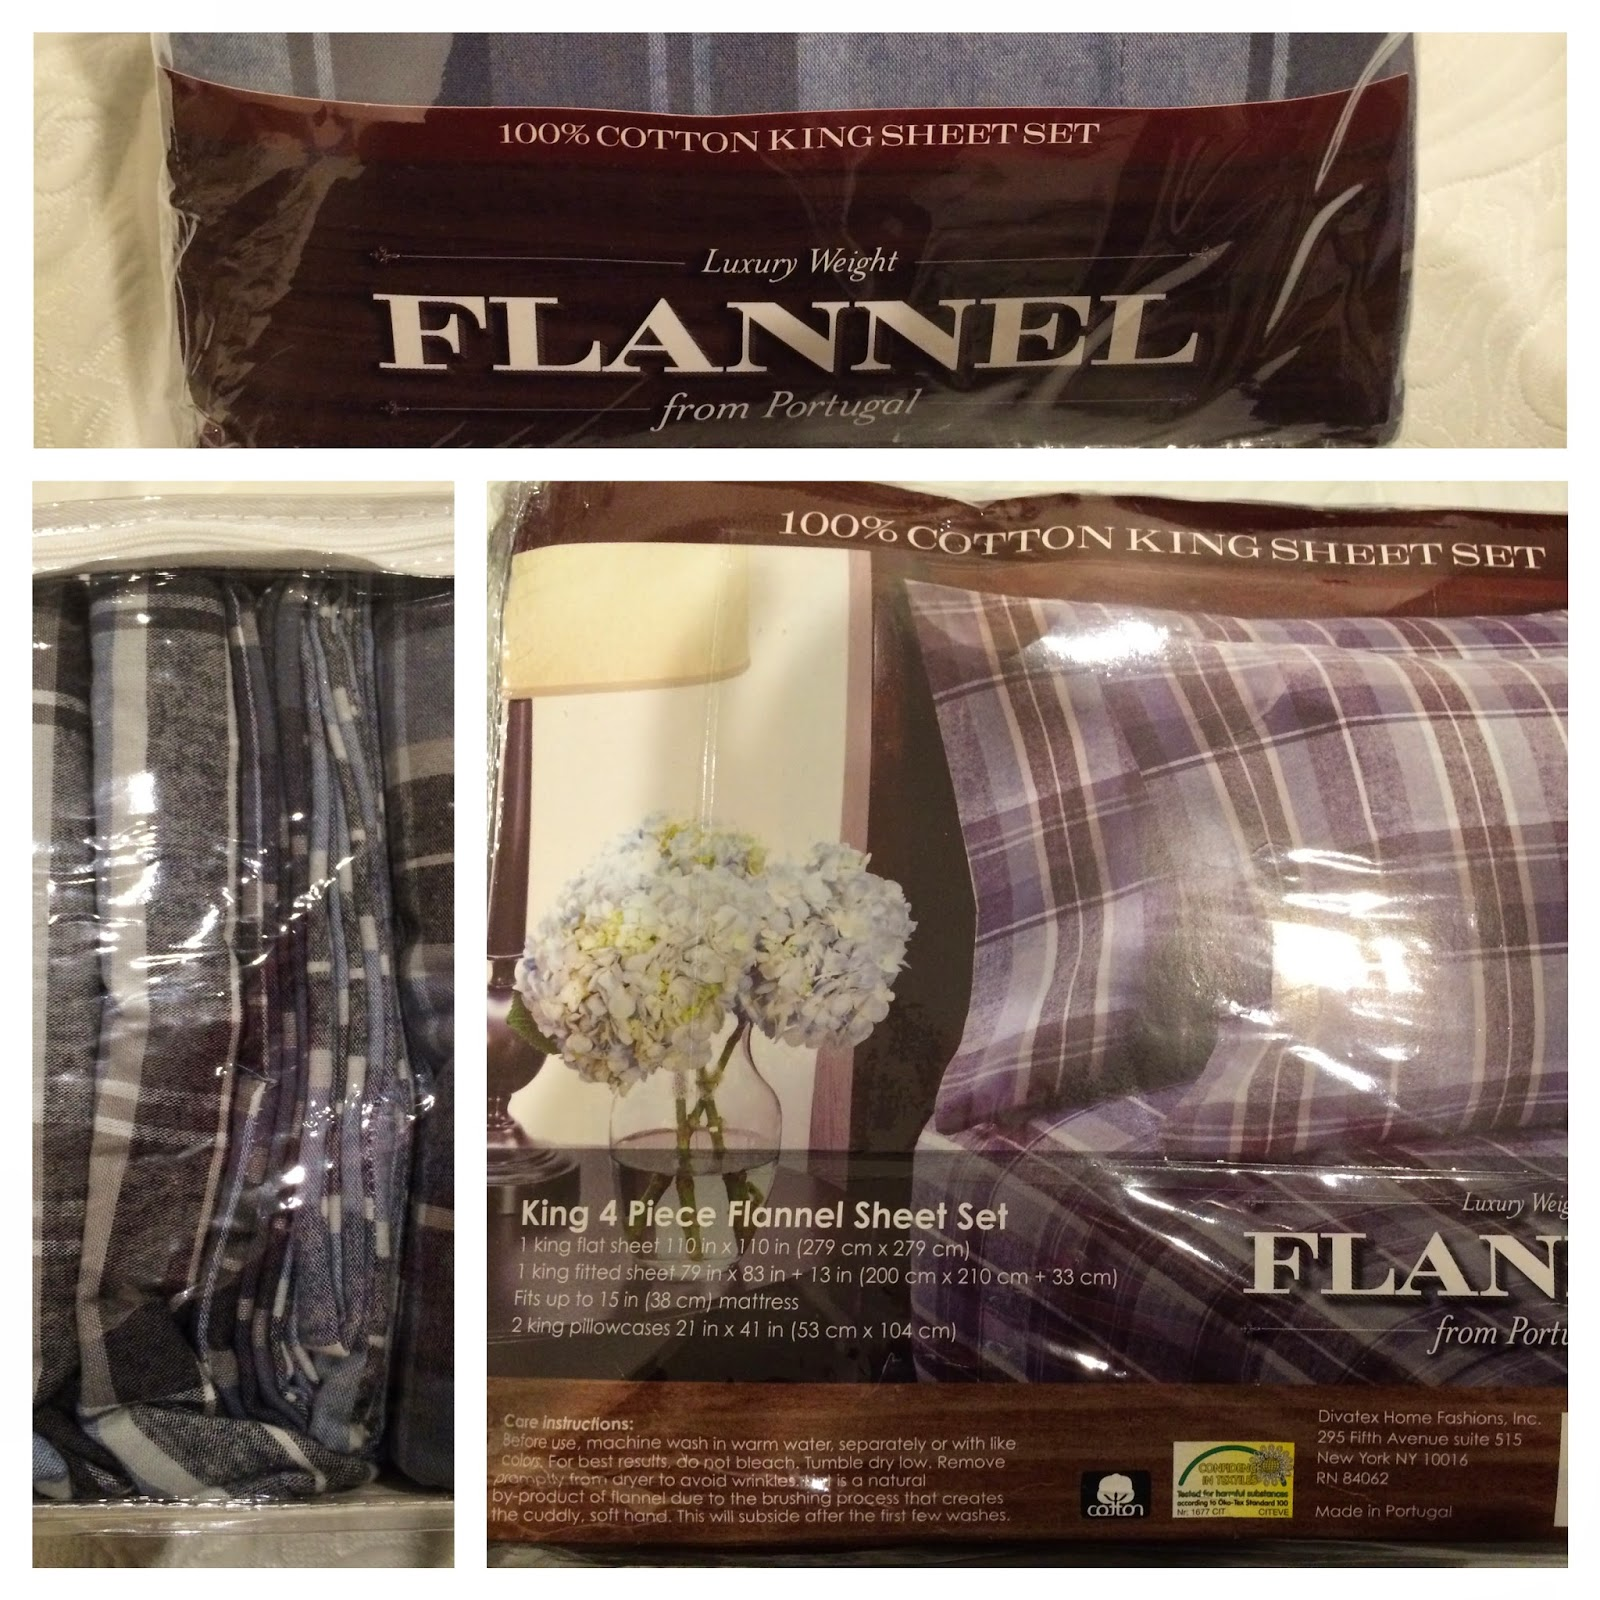 the costco connoisseur - Flannel Sheets Queen